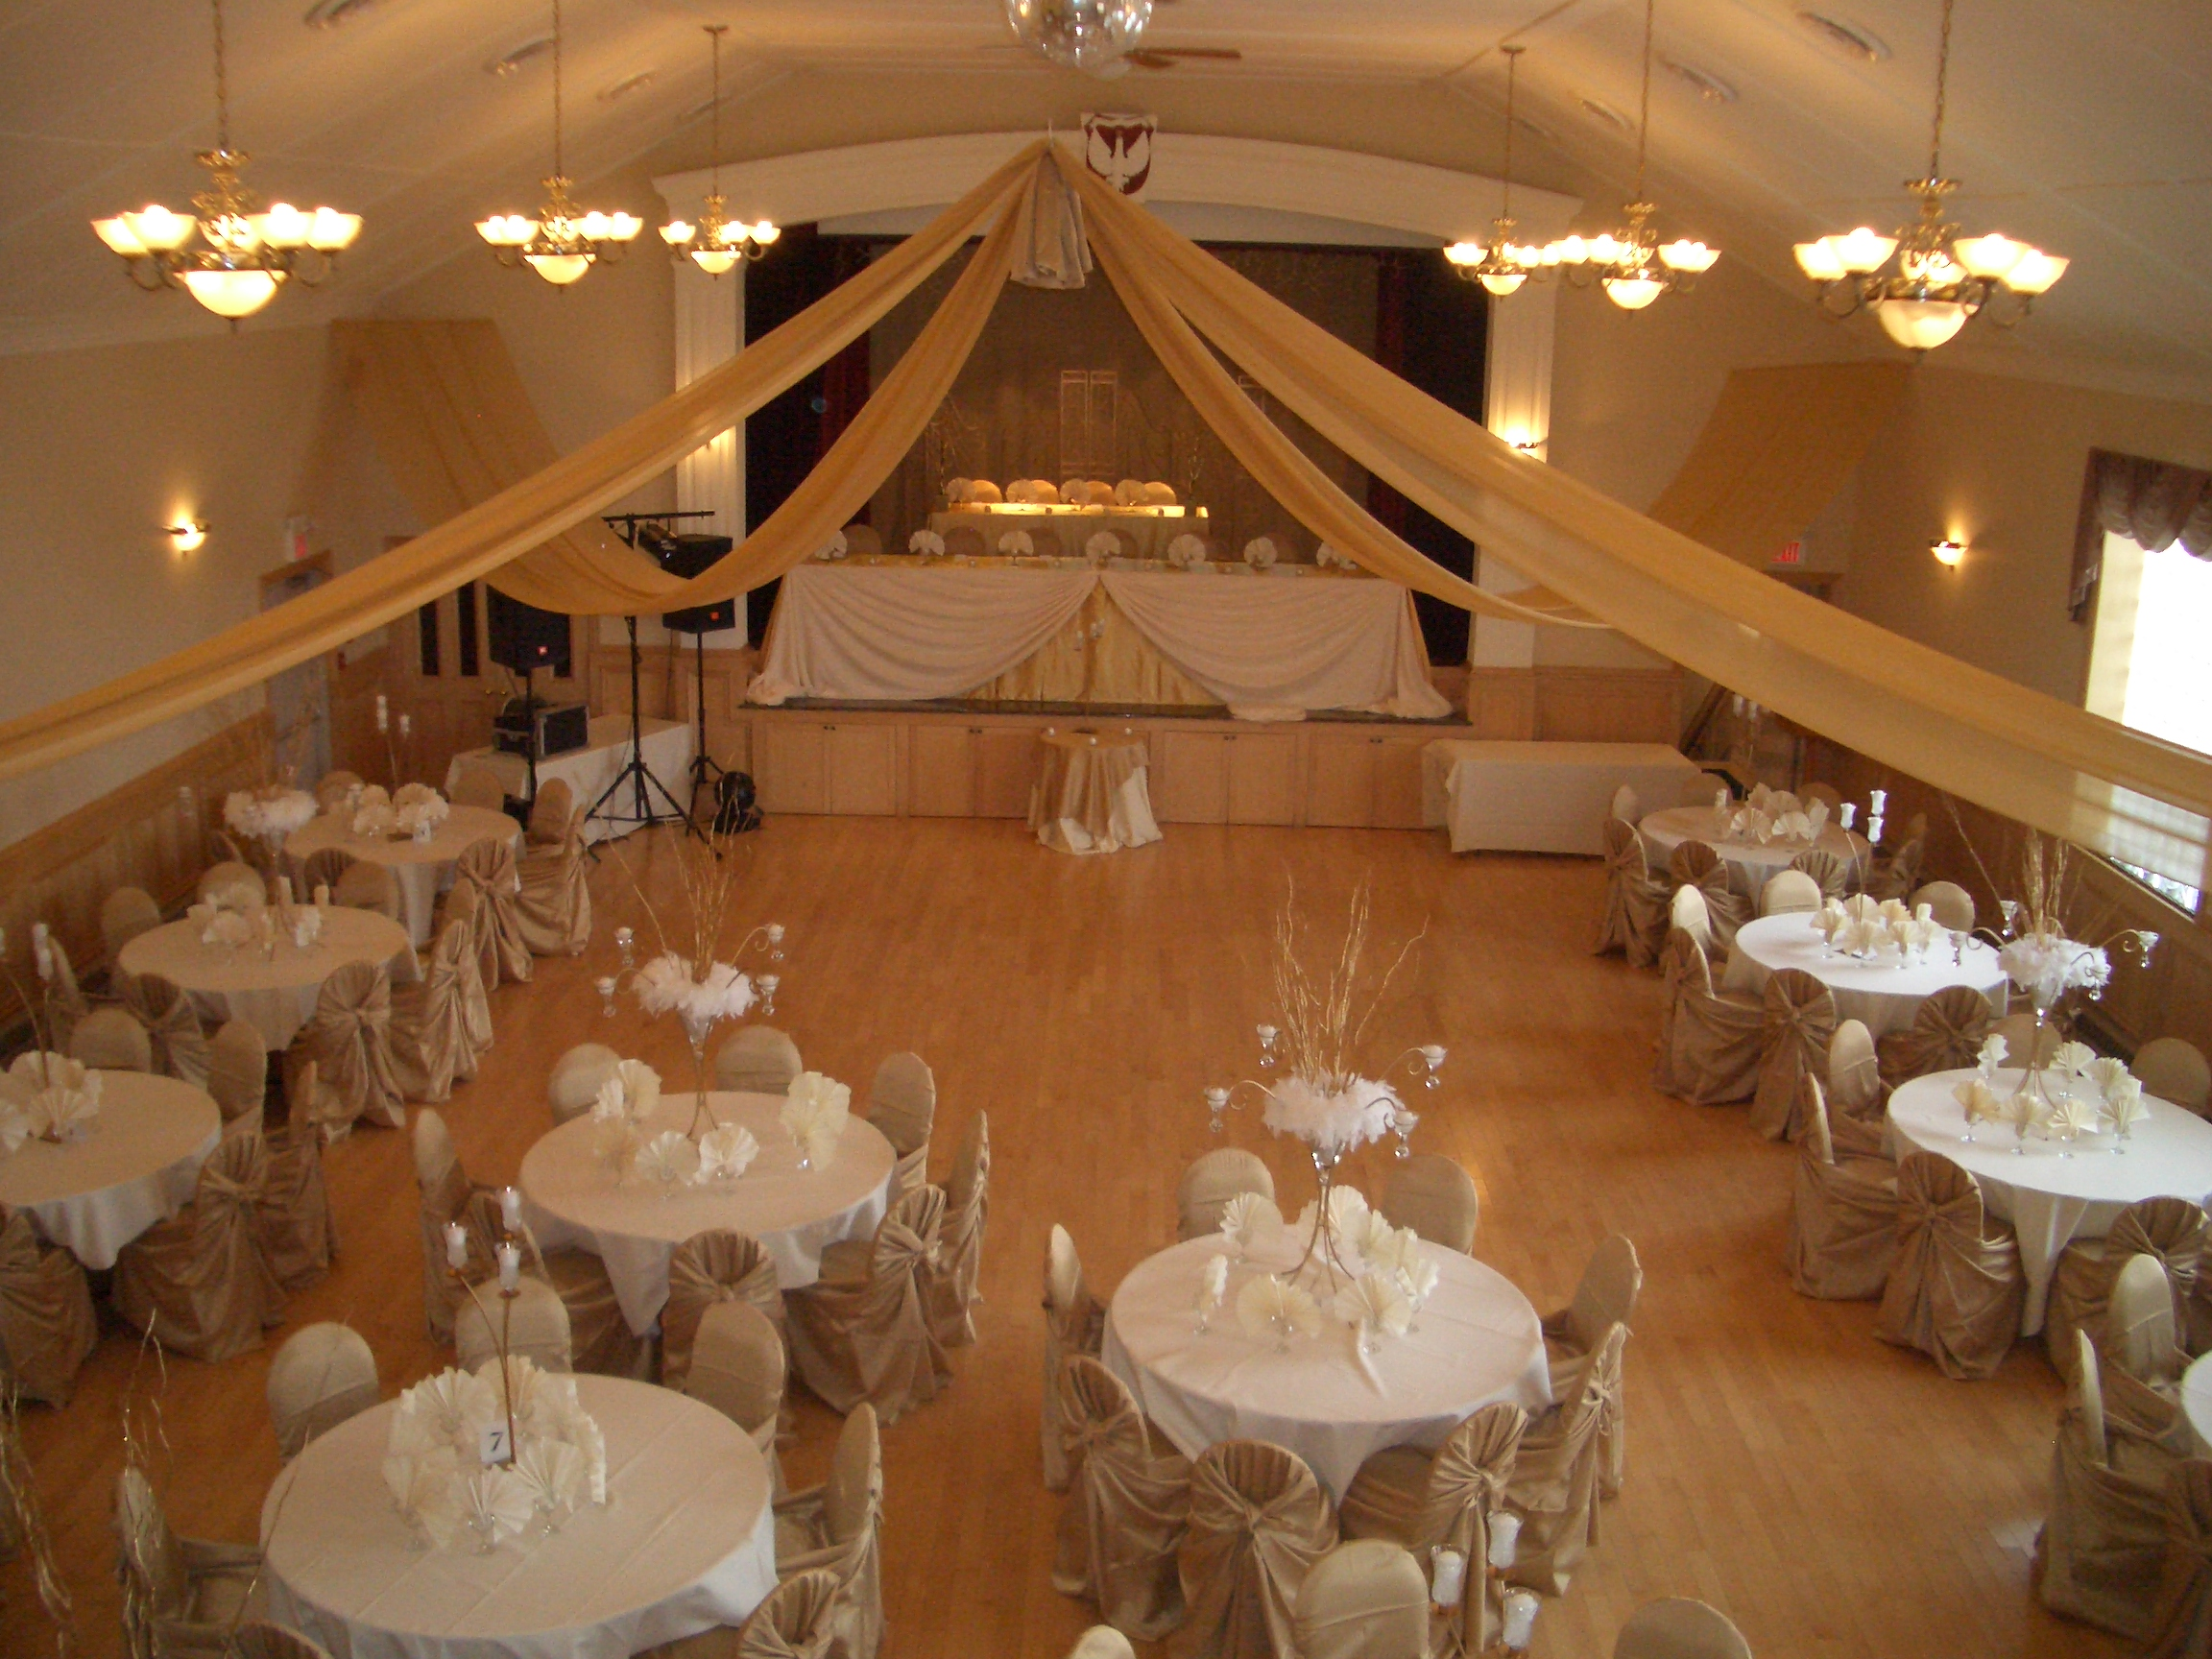 Banquet Hall Decorated For A Wedding Receptiongallery View